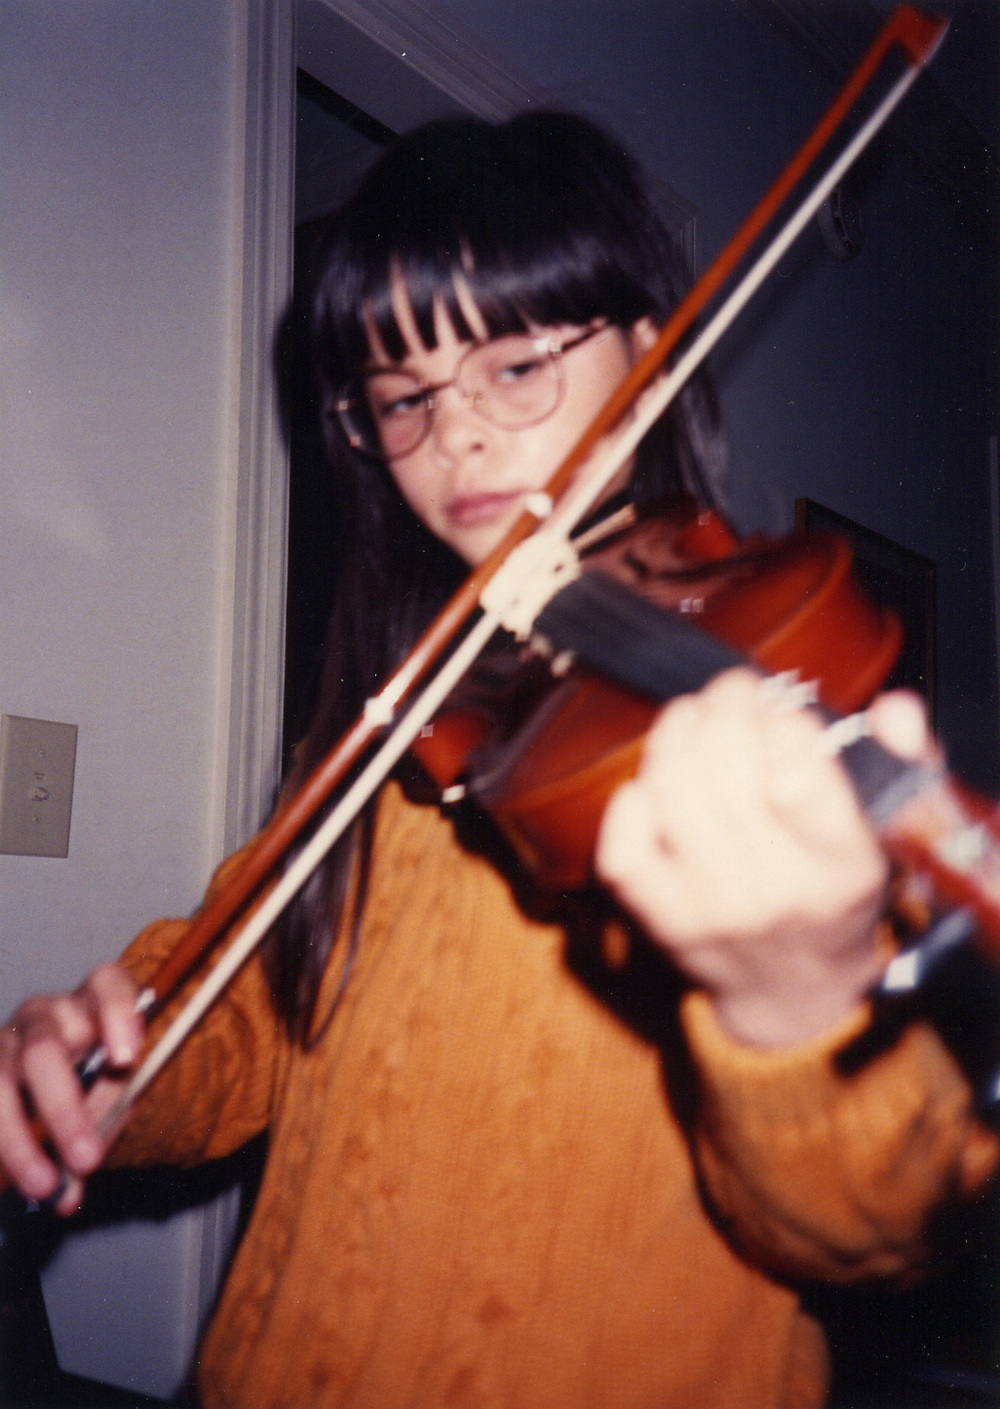 402 playing violin (blurred).jpg